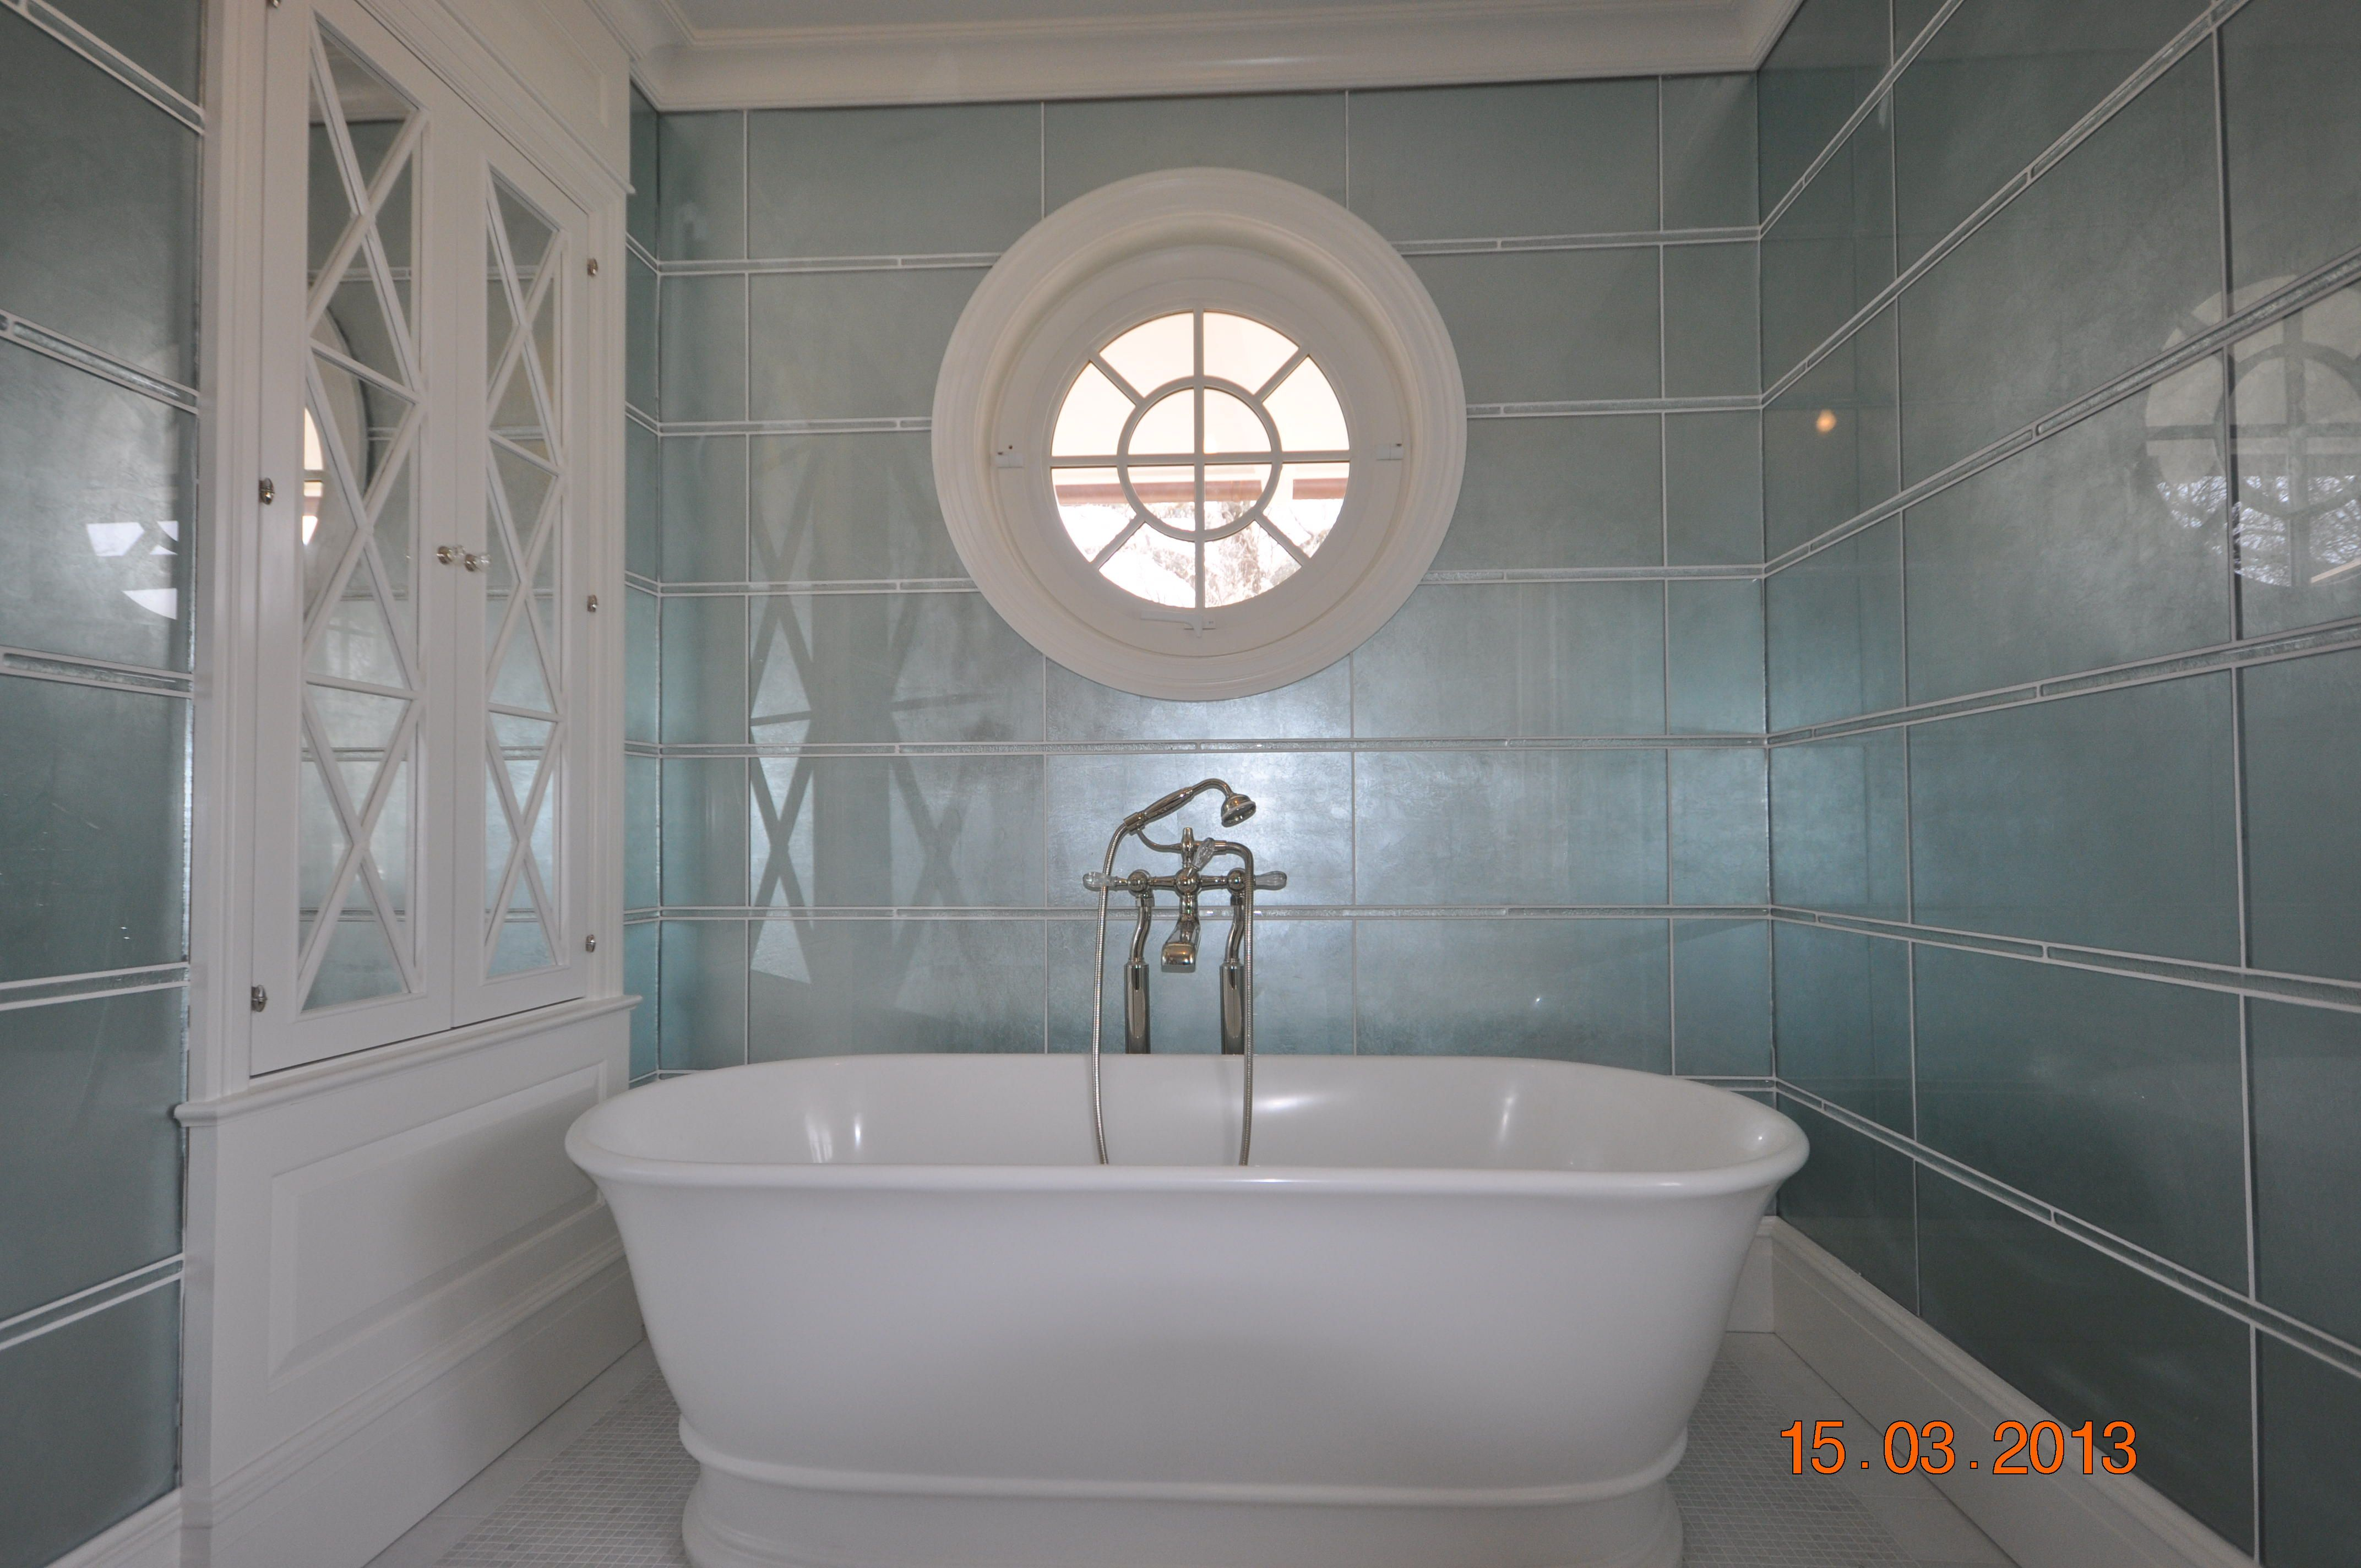 12x24 glass tile specialty glass very expensive with 1x24 glass glass tile specialty glass very expensive with glass liner in between rows of tile bath floor is mosaic natural stone dailygadgetfo Image collections